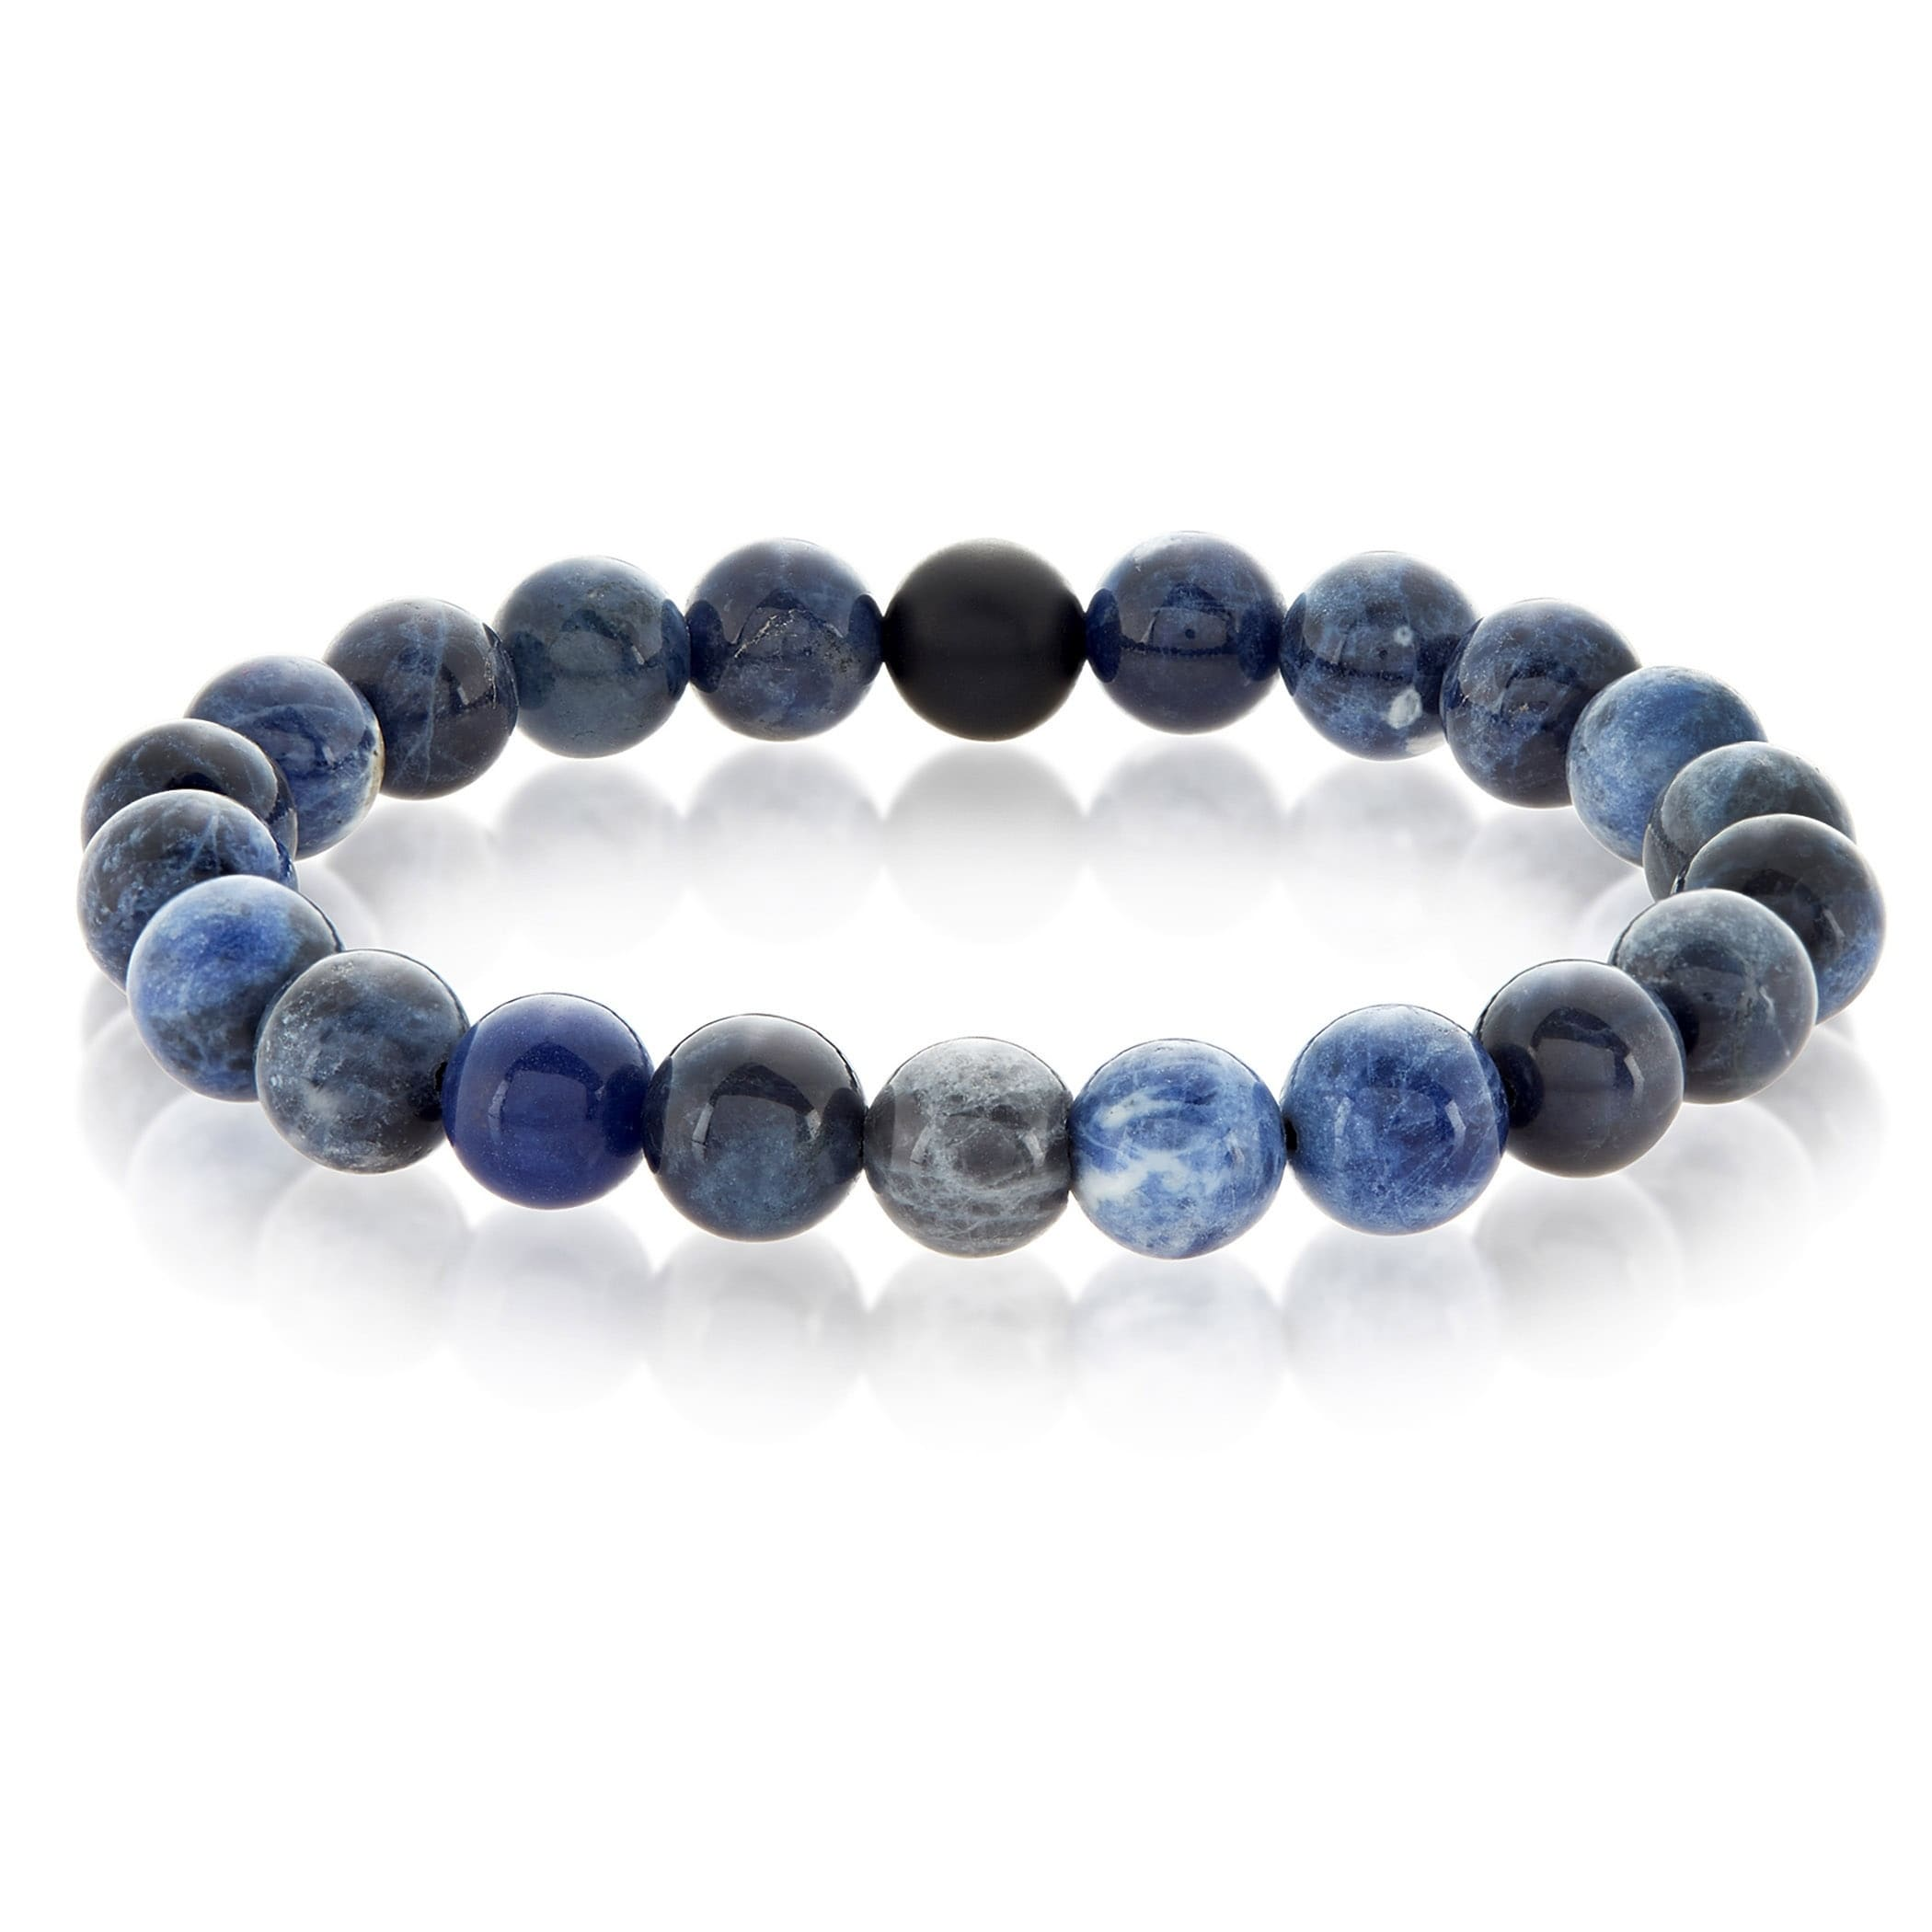 jtxn men beaded mens bead nz for il lava bracelet gift zoom listing fullxfull stone ideas